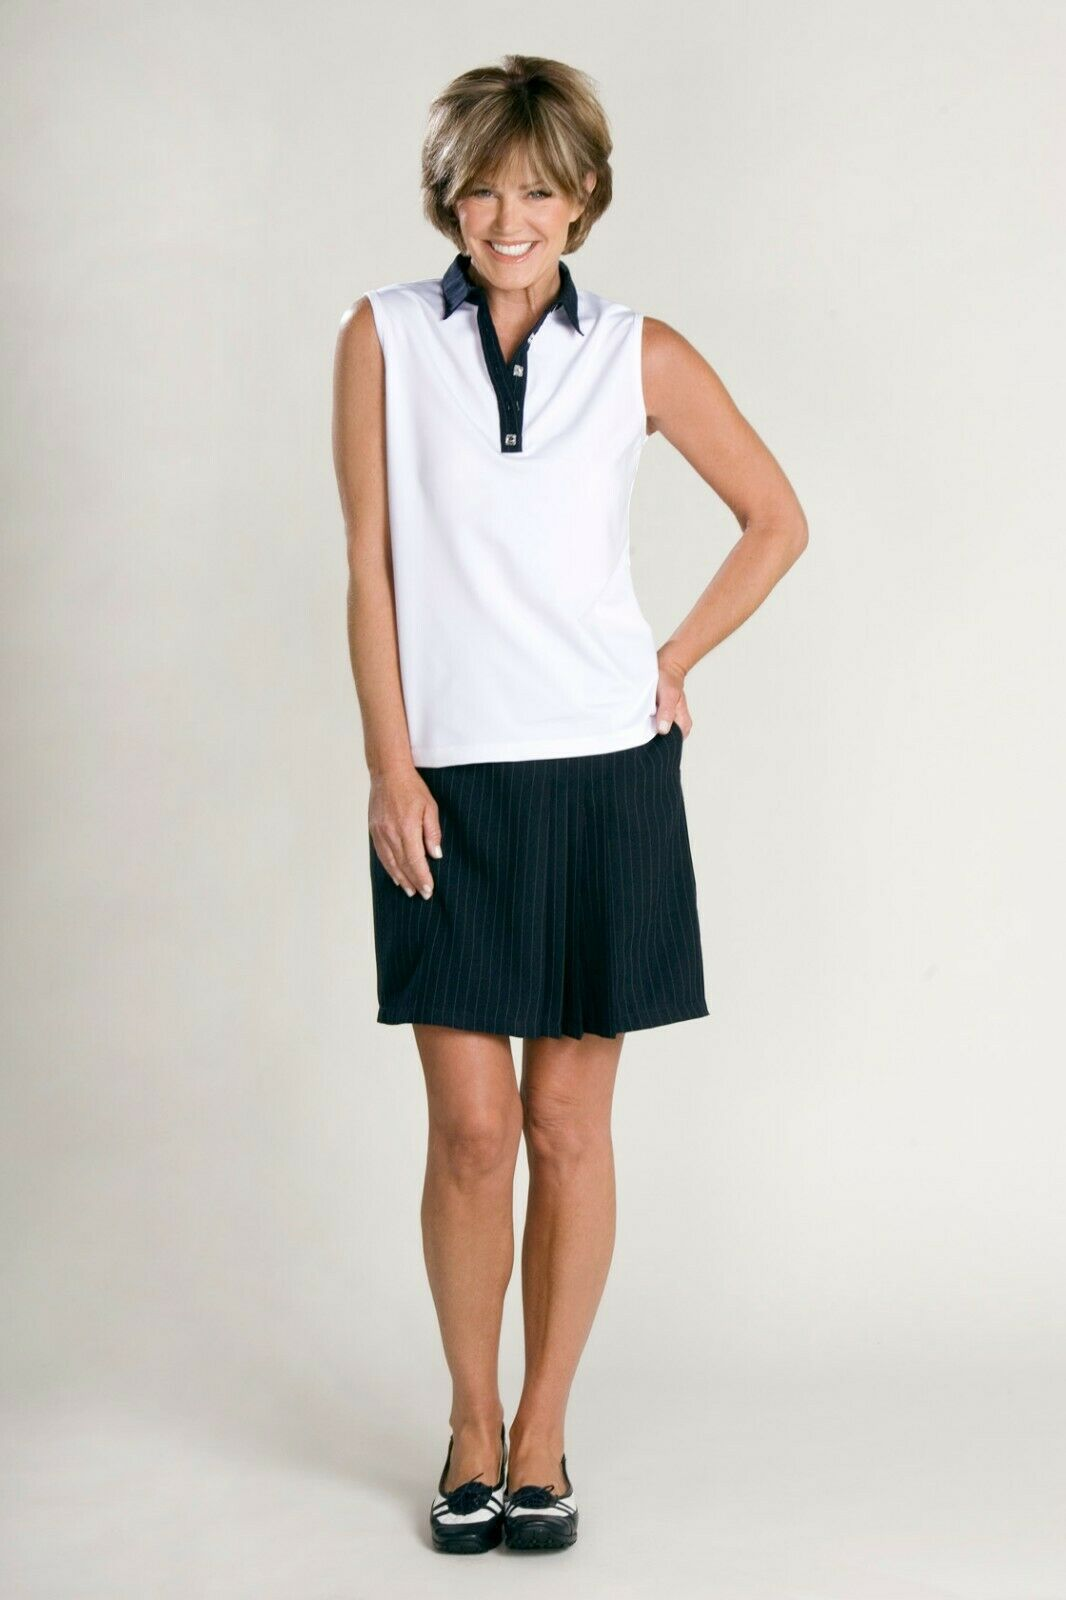 Stylish Women's Golf & Casual White Short Sleeve Collar Top, Swarovski Buttons image 8